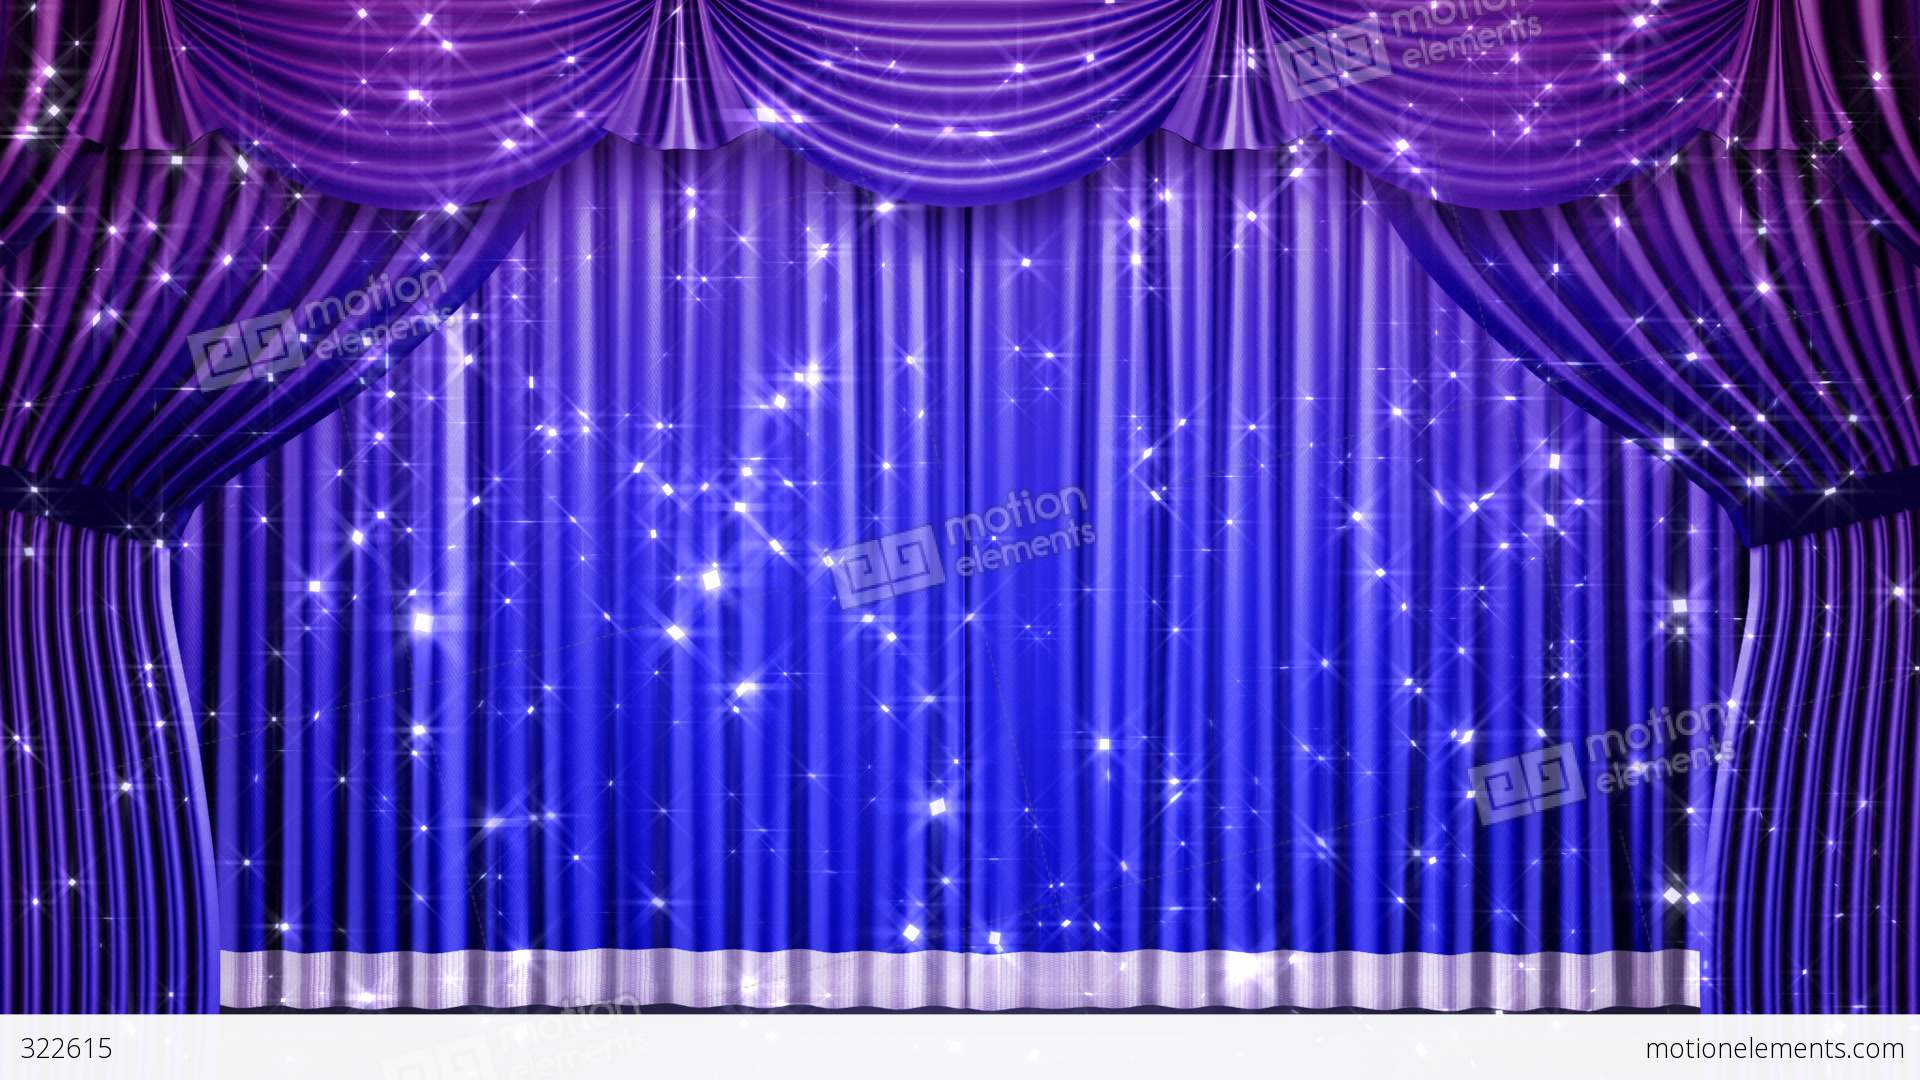 Stage curtains animation - Stage Curtain 2 Fbk1 Stock Video Footage